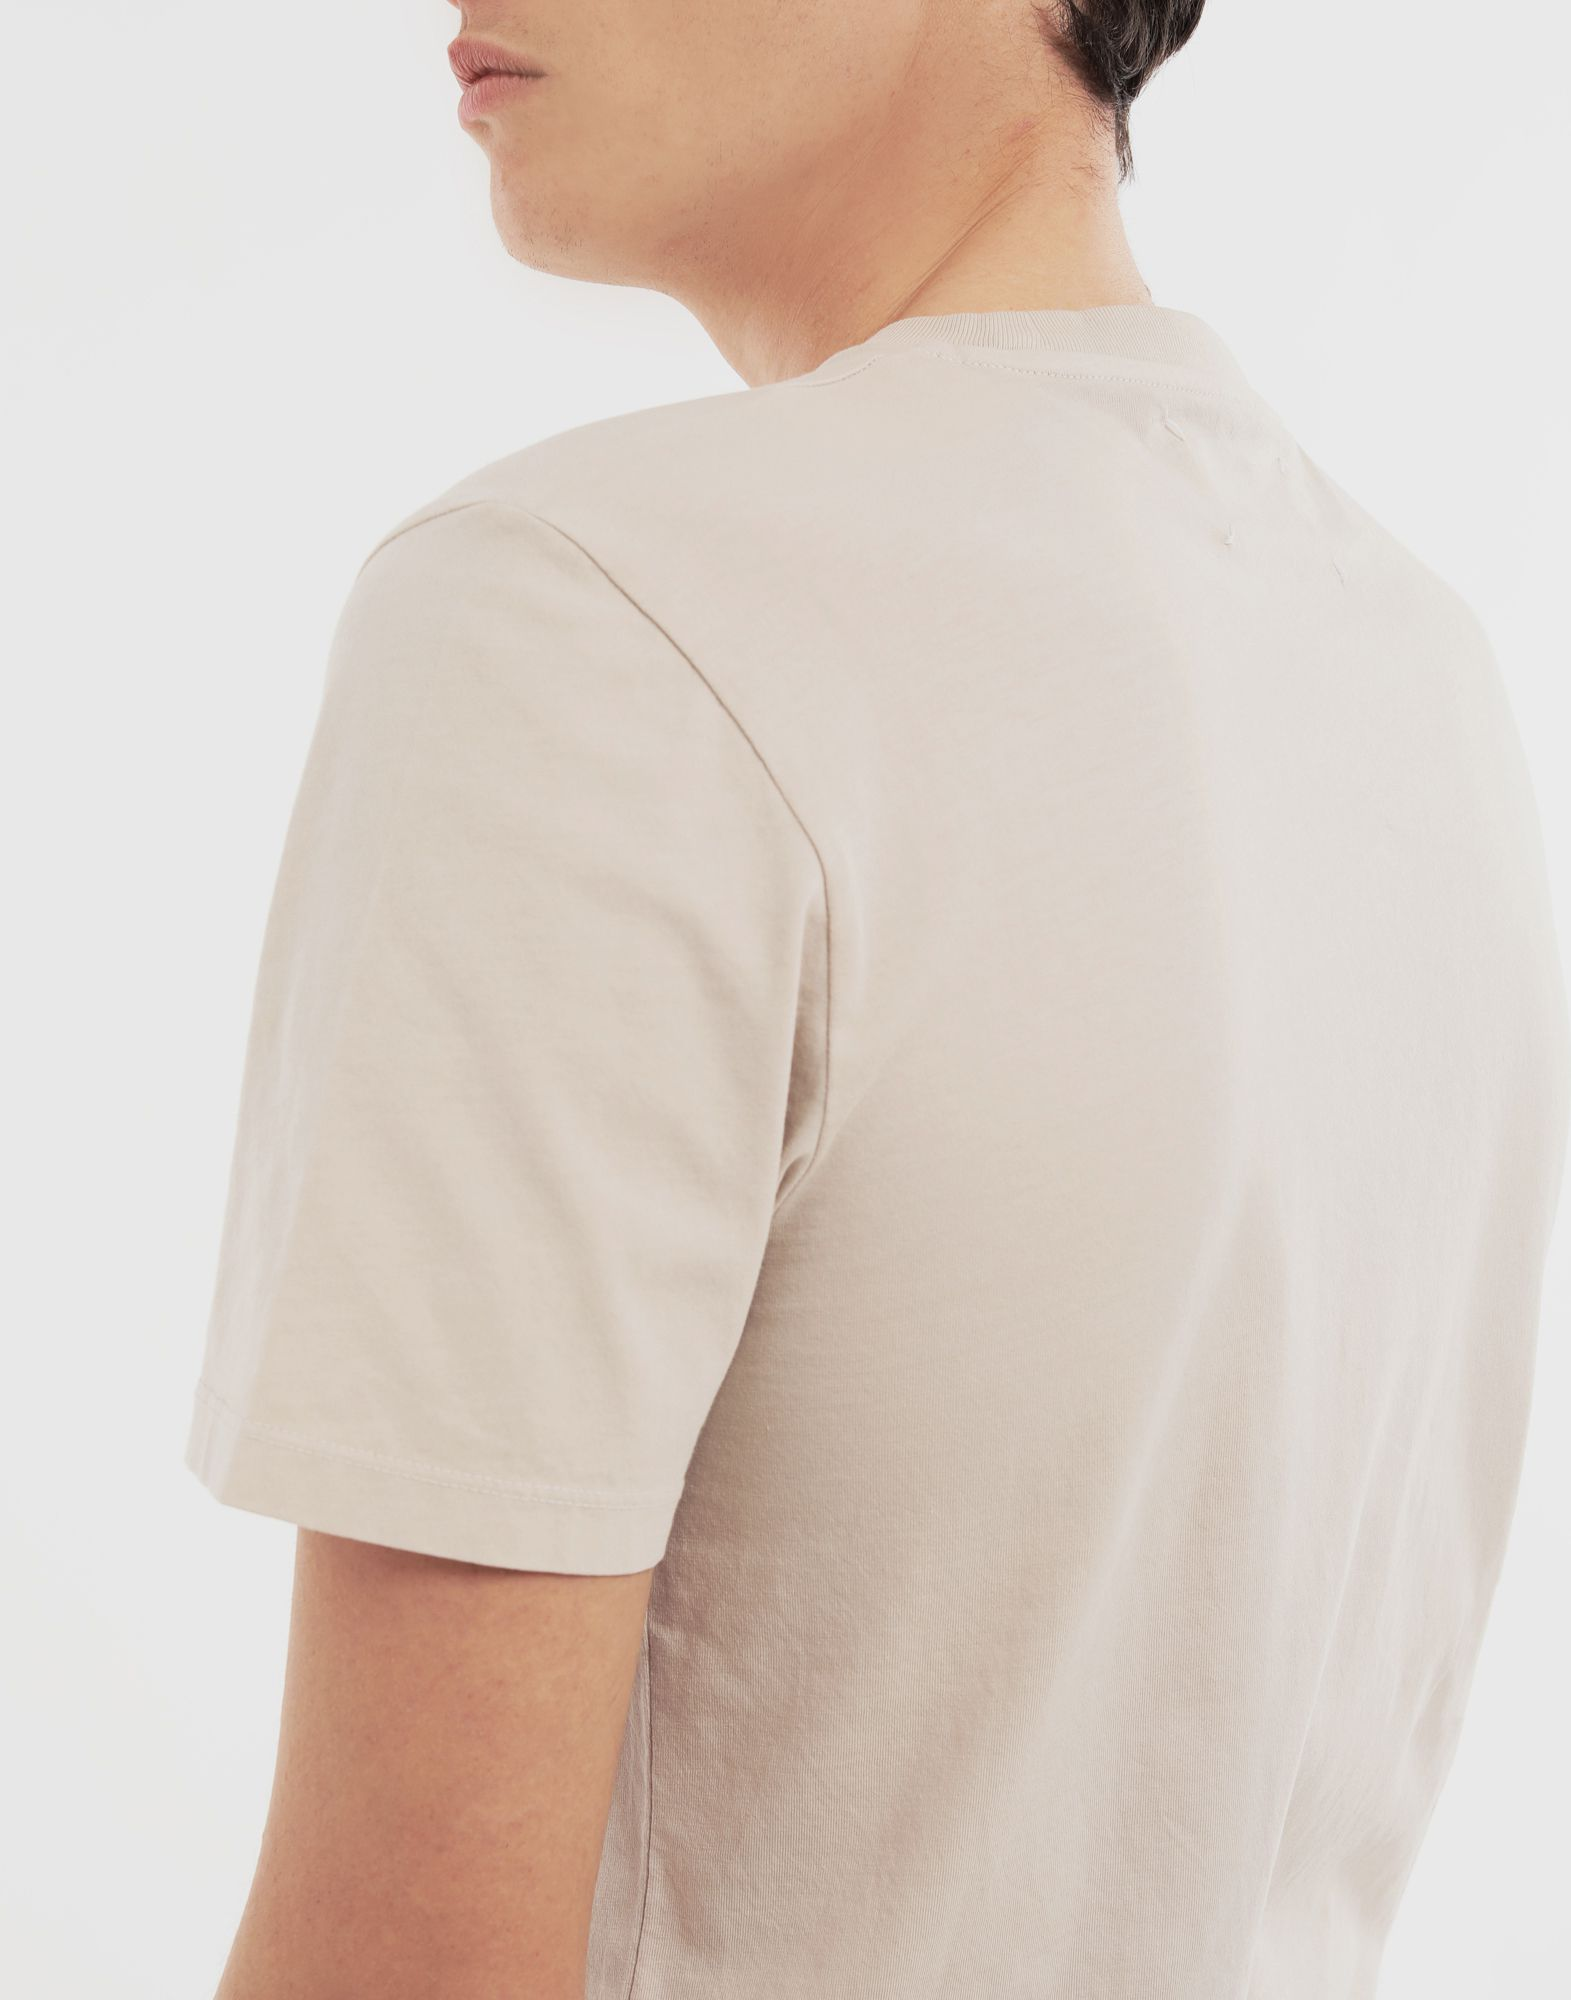 MAISON MARGIELA Cotton T-shirt Short sleeve t-shirt Man b